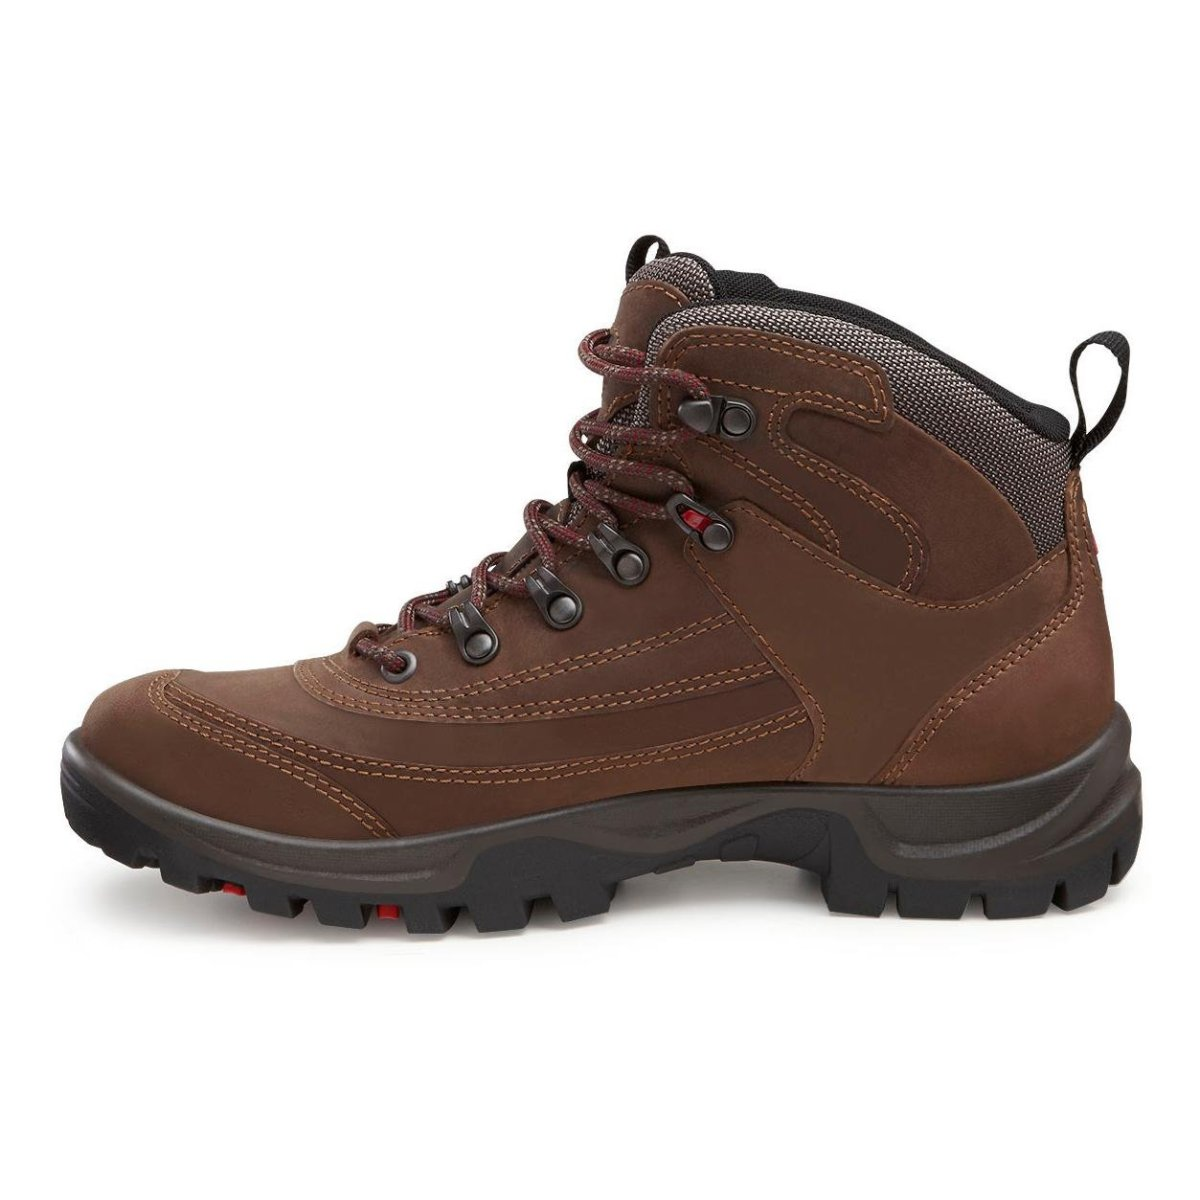 ECCO XPEDITION III Hikingschuh braun